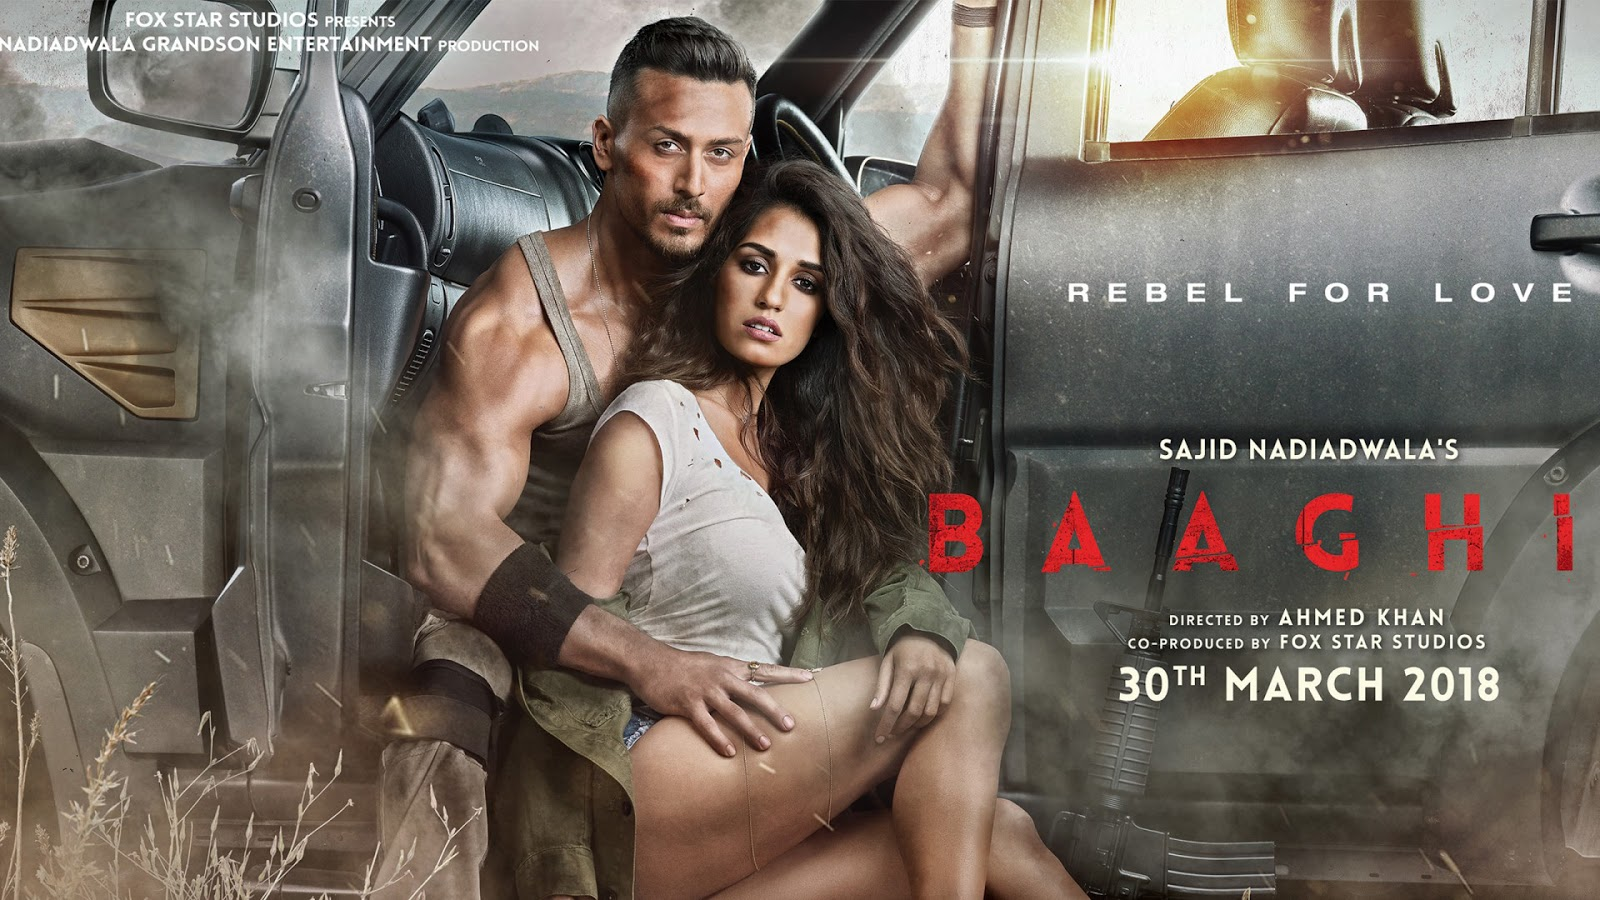 hd wallpapers feed baaghi 2 wallpapers tiger shroff